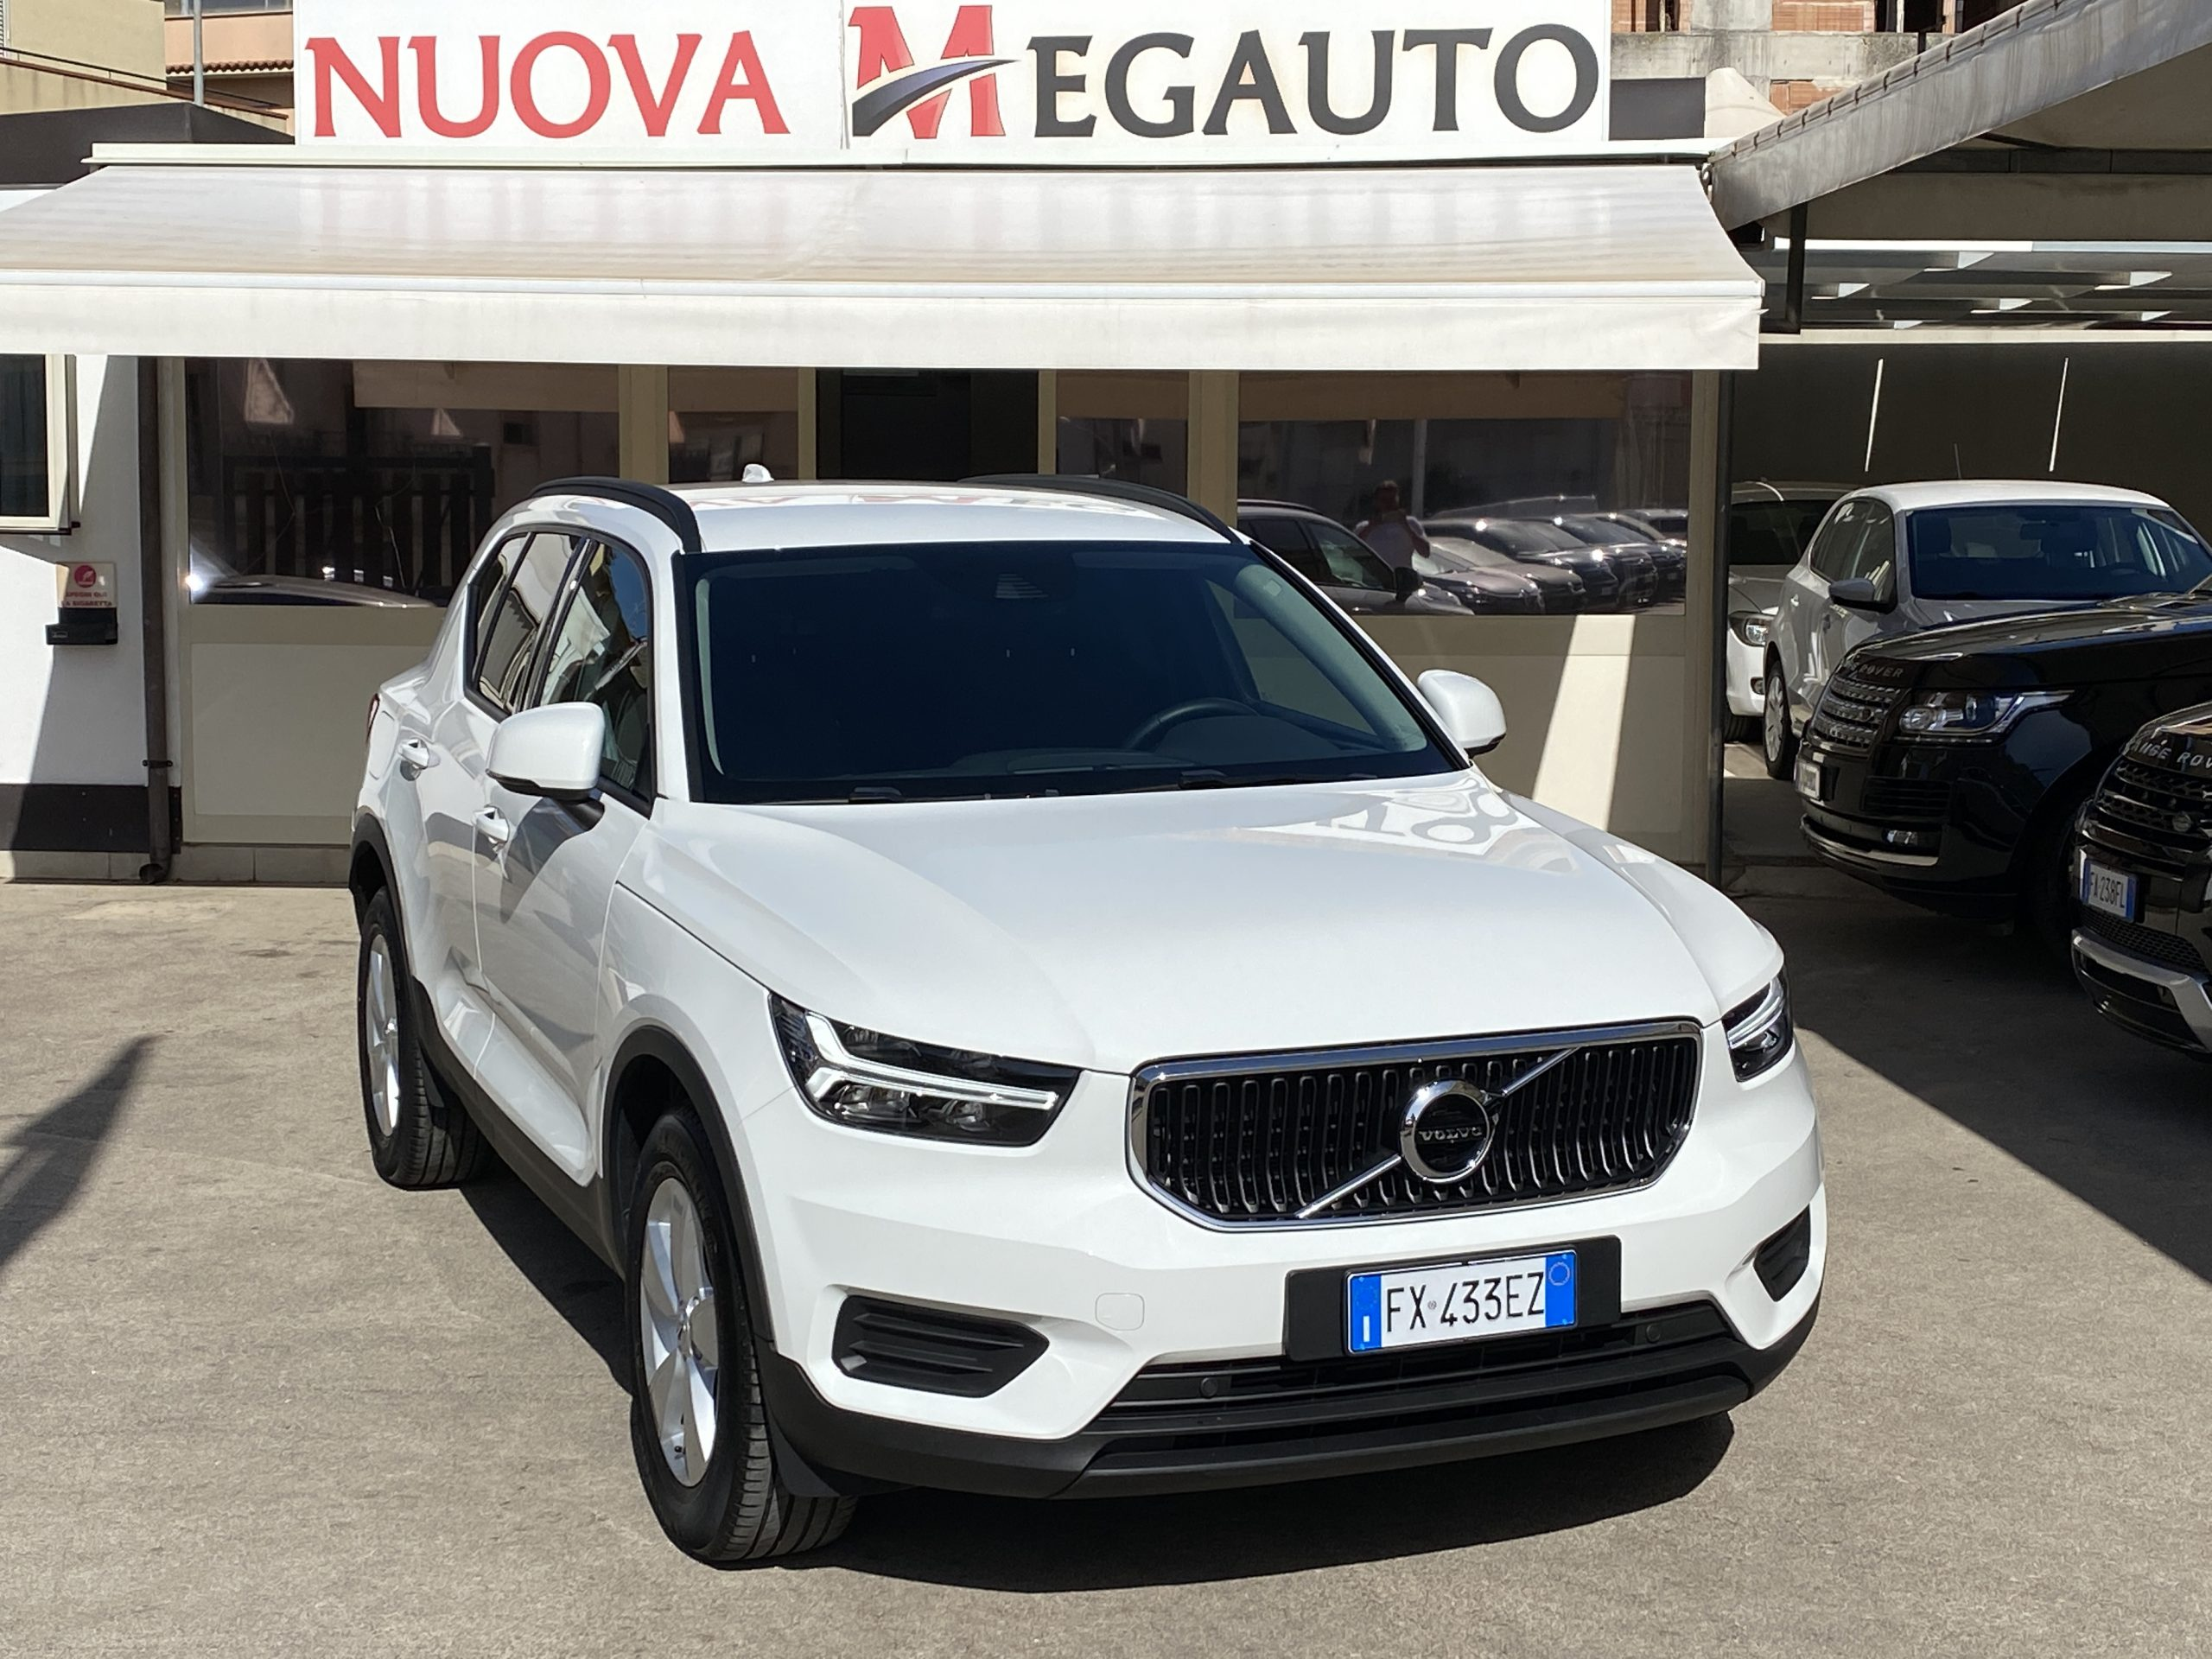 Volvo XC 40 D3 Geartronic